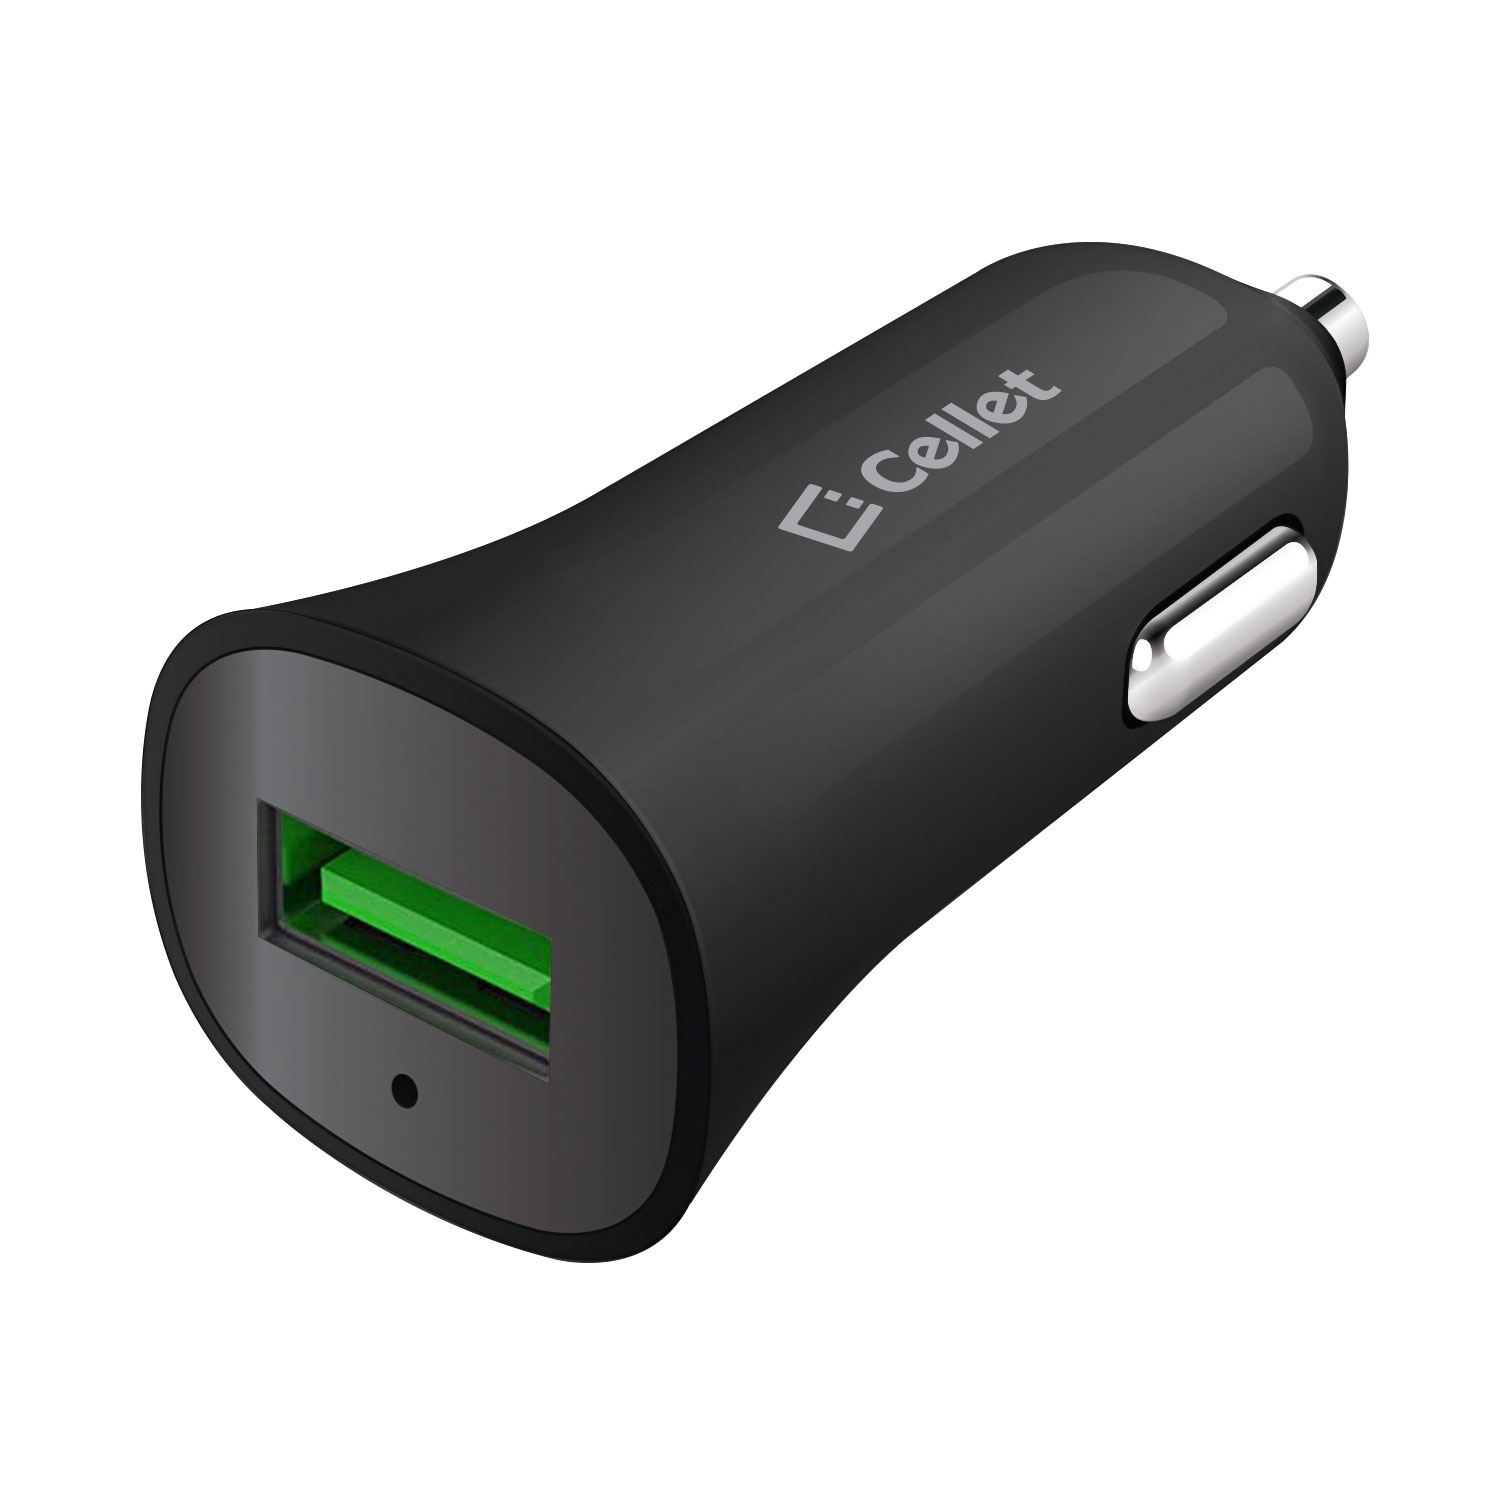 LG Tribute Royal Car Charger Quick Charge 3.0 Black 3.3ft